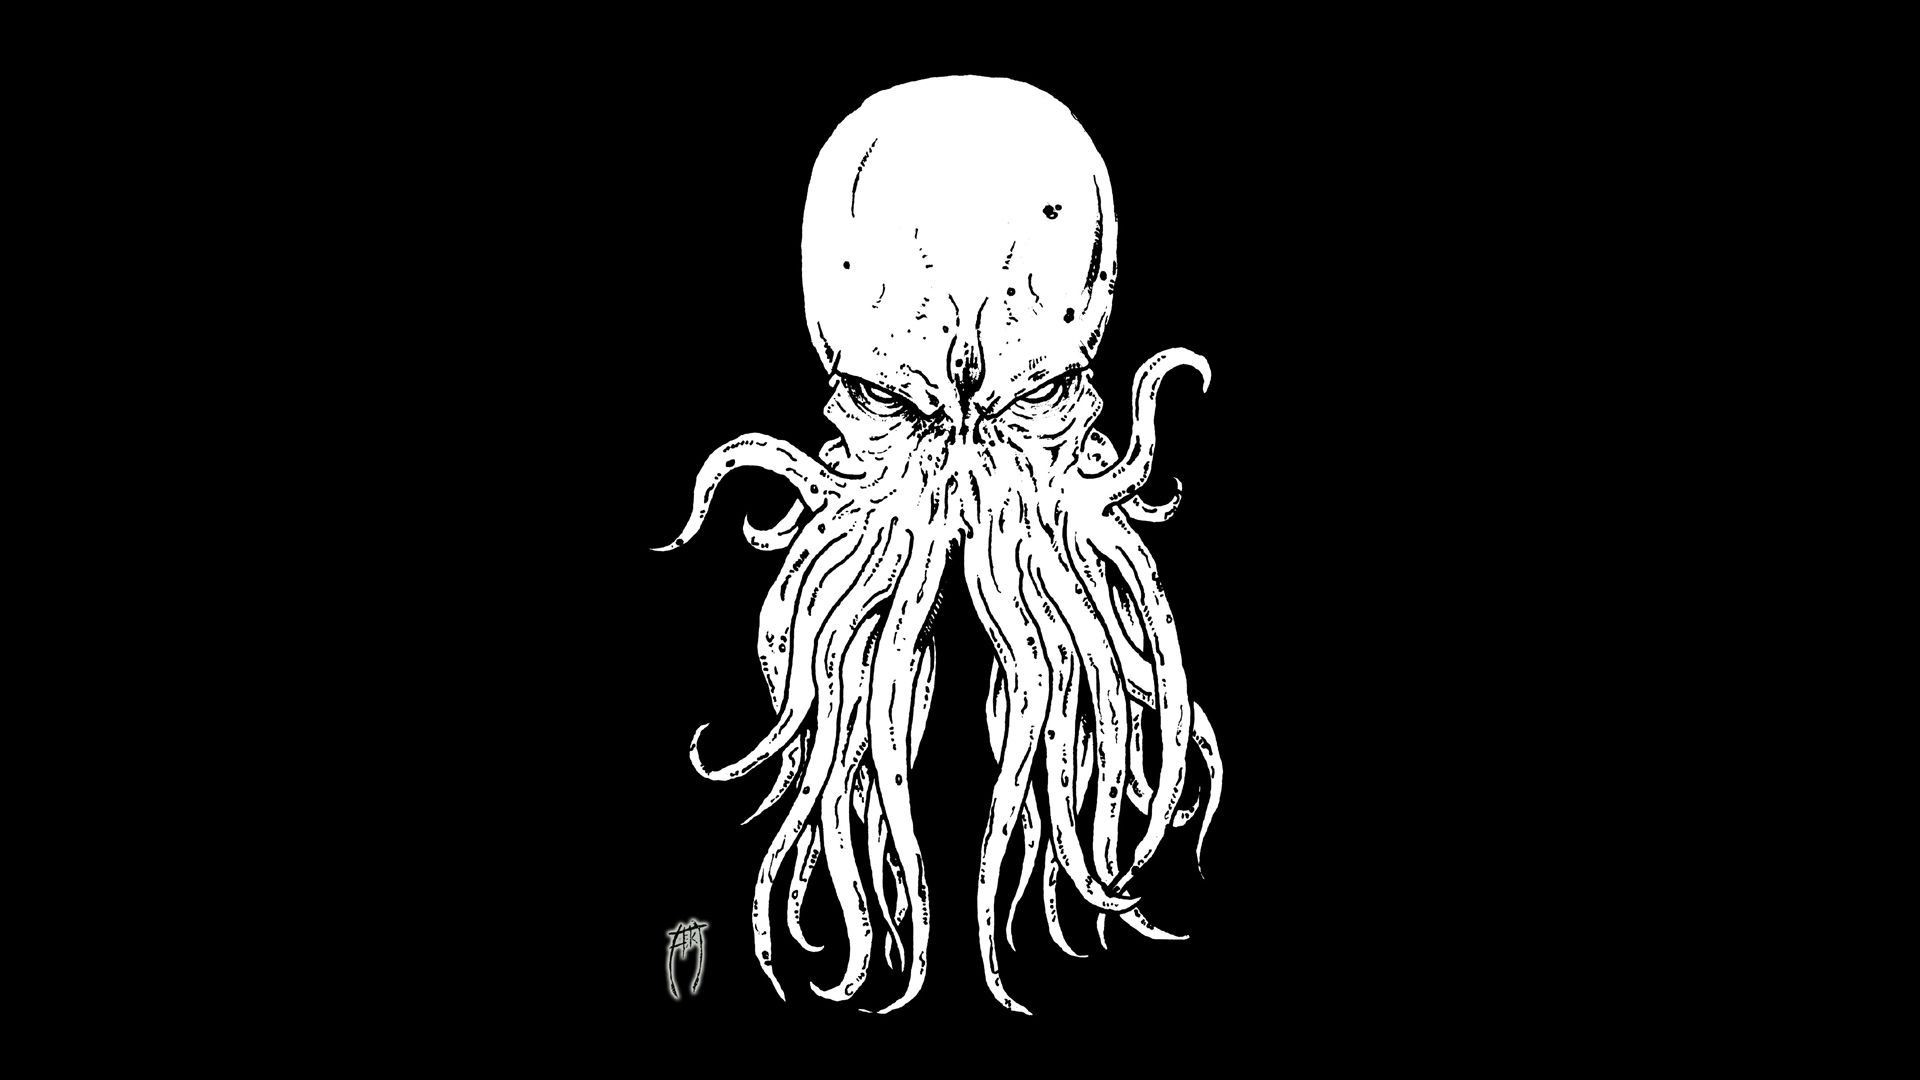 Res: 1920x1080, Download free cthulhu wallpapers for your mobile phone - most